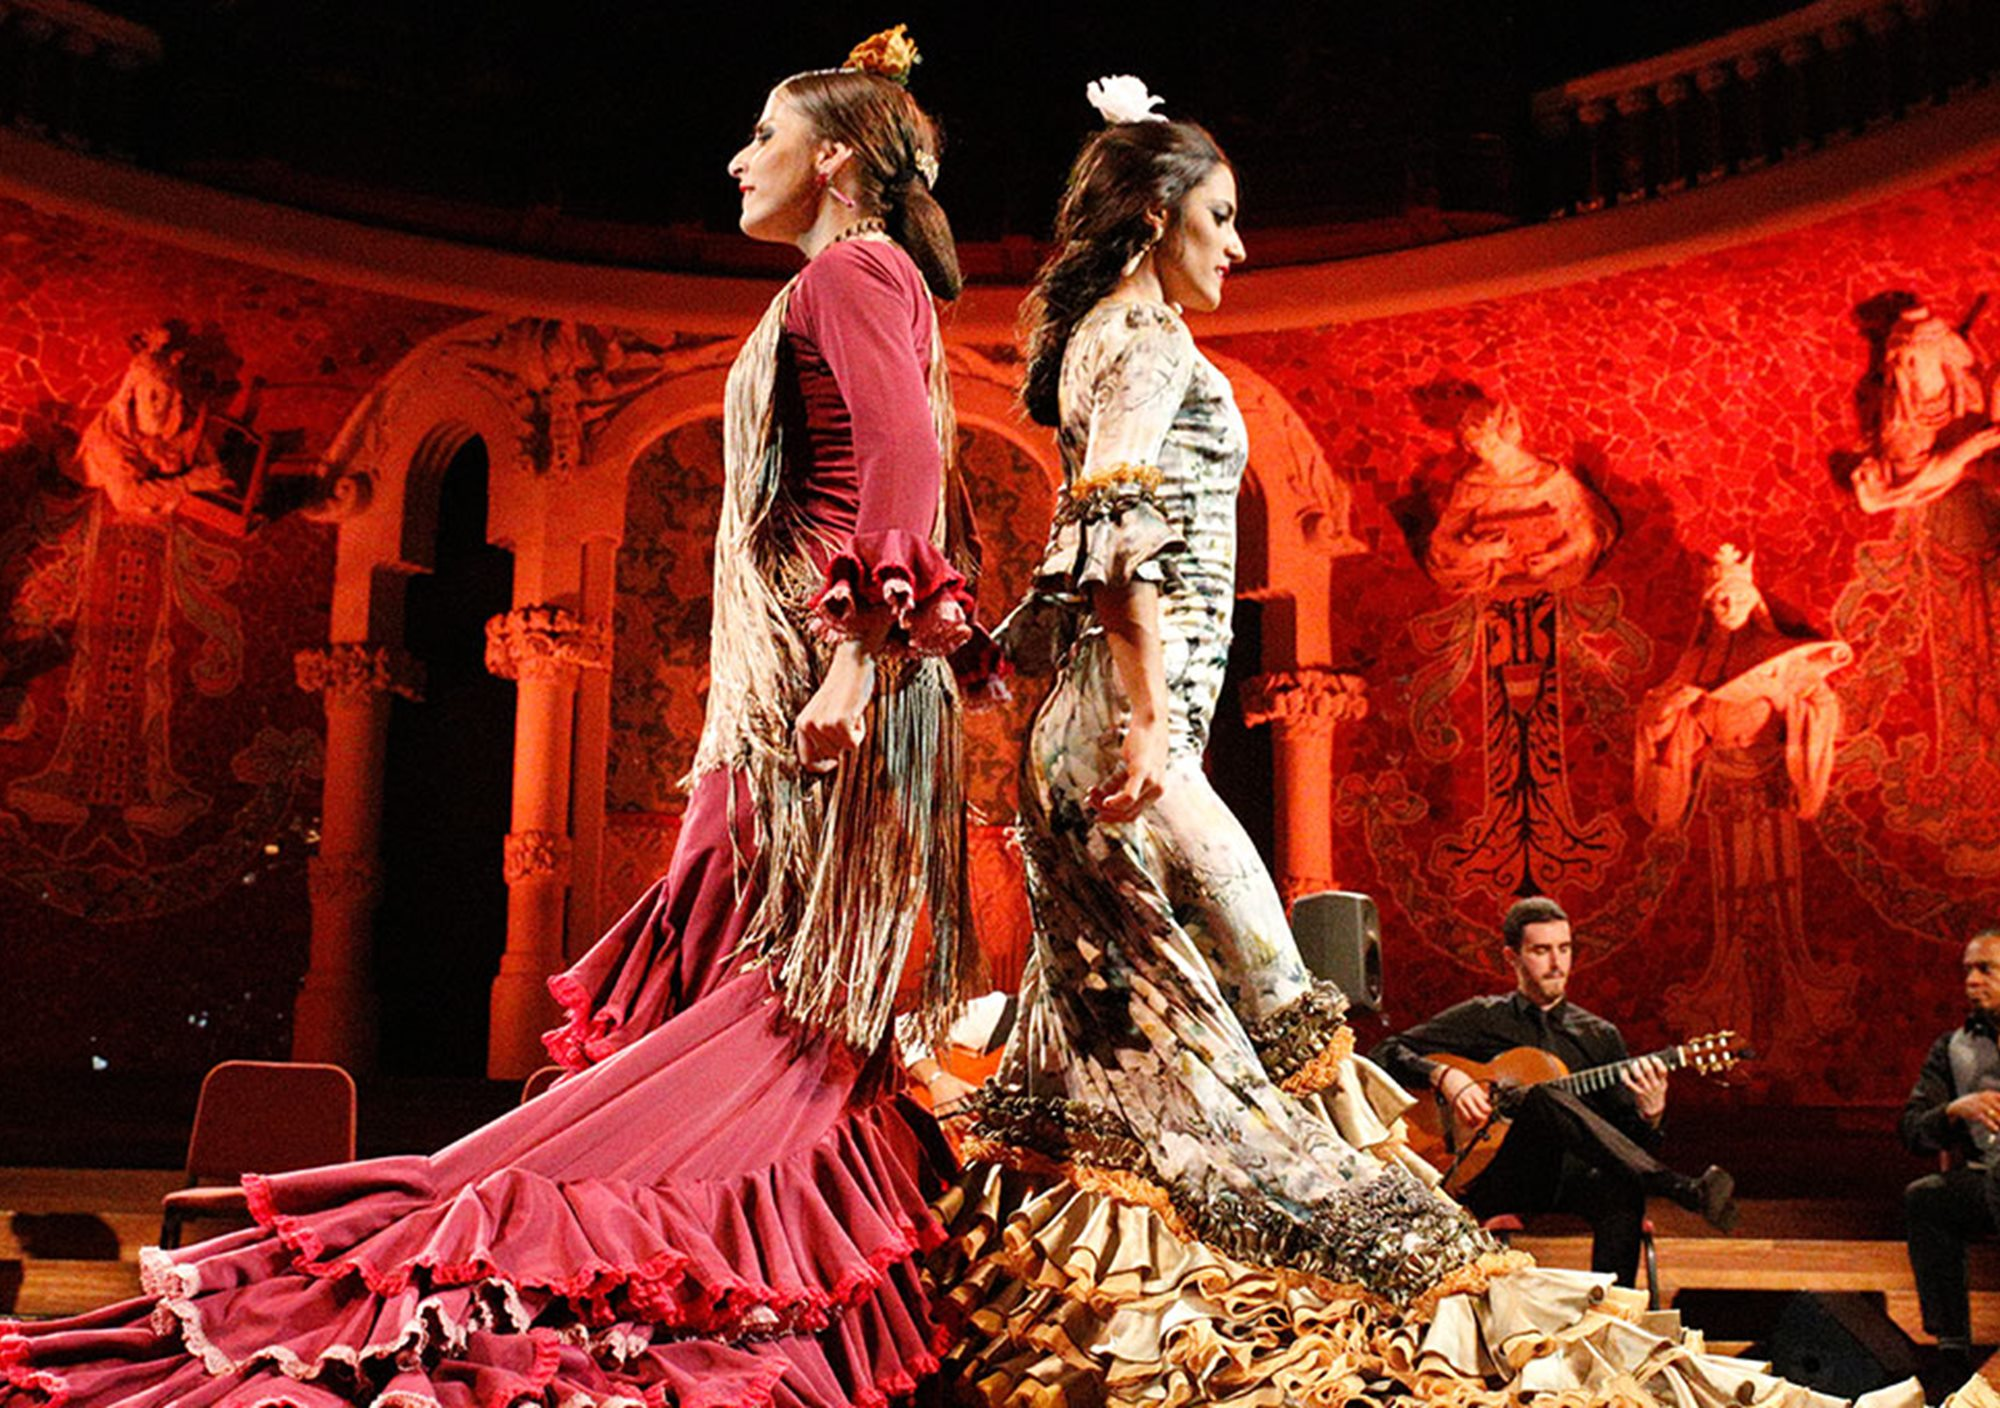 Show Gran Gala Flamenco in Teatre Poliorama buy online tickets reserve book